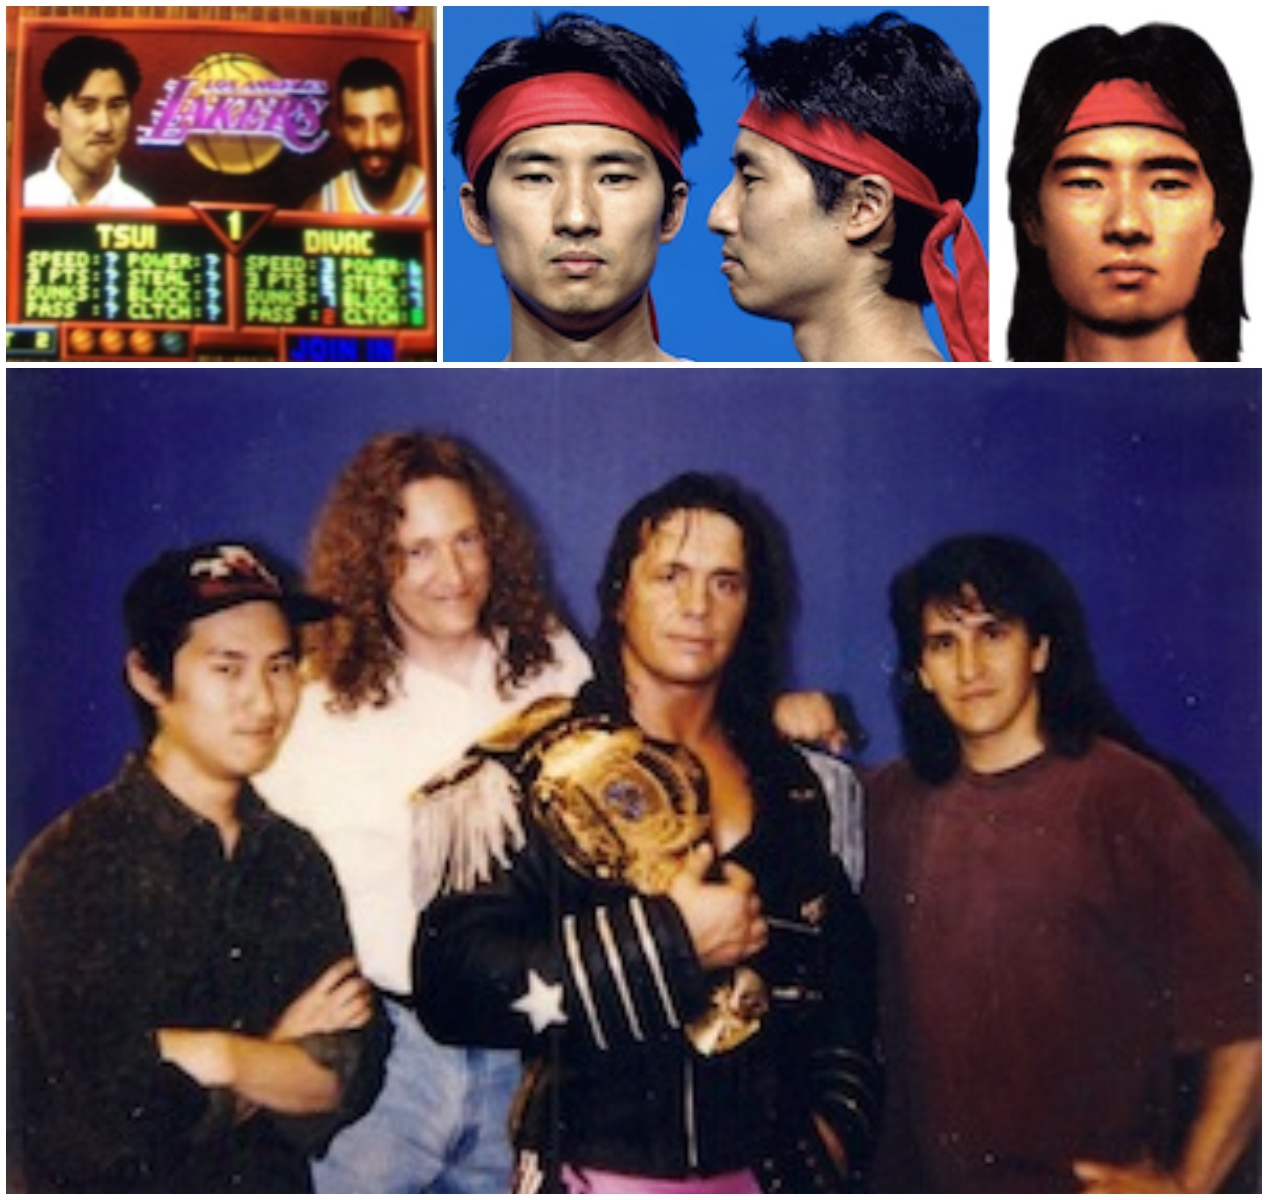 Tsui appeared in NBA Jam and Mortal Kombat and filmed WWF wrestlers in the making of <i>Wrestlemania: The Arcade Game</i>